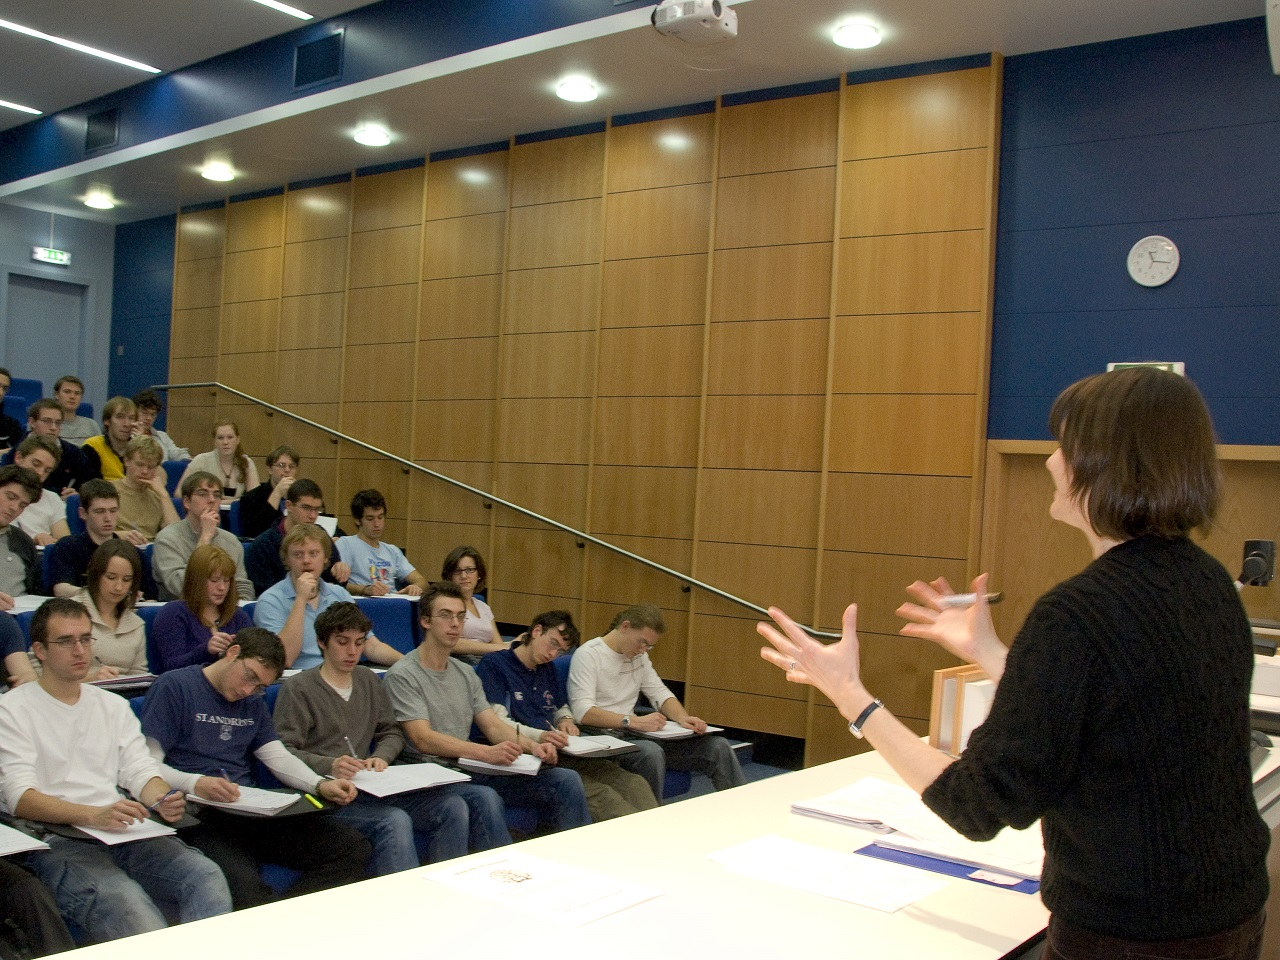 Honours lecture on atomic physics: copyright www.broaddaylightltd.co.uk